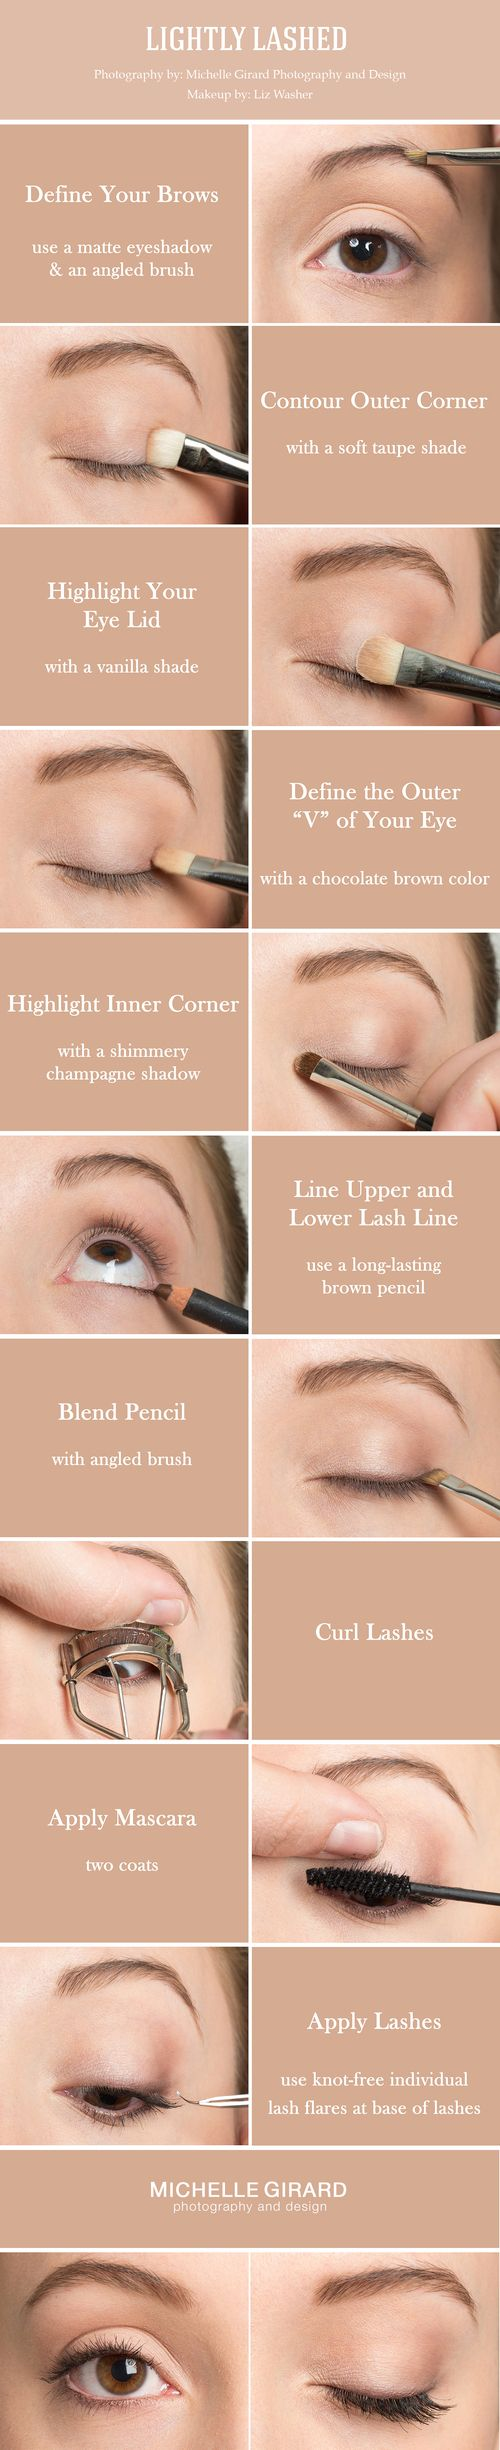 Clean, Natural Makeup Tutorial with Lovely  Lashes :: Inspired by Shailene Woodley :: As seen on Style Me Pretty :: Liz Washer Makeup :: Michelle Girard Photography & Design